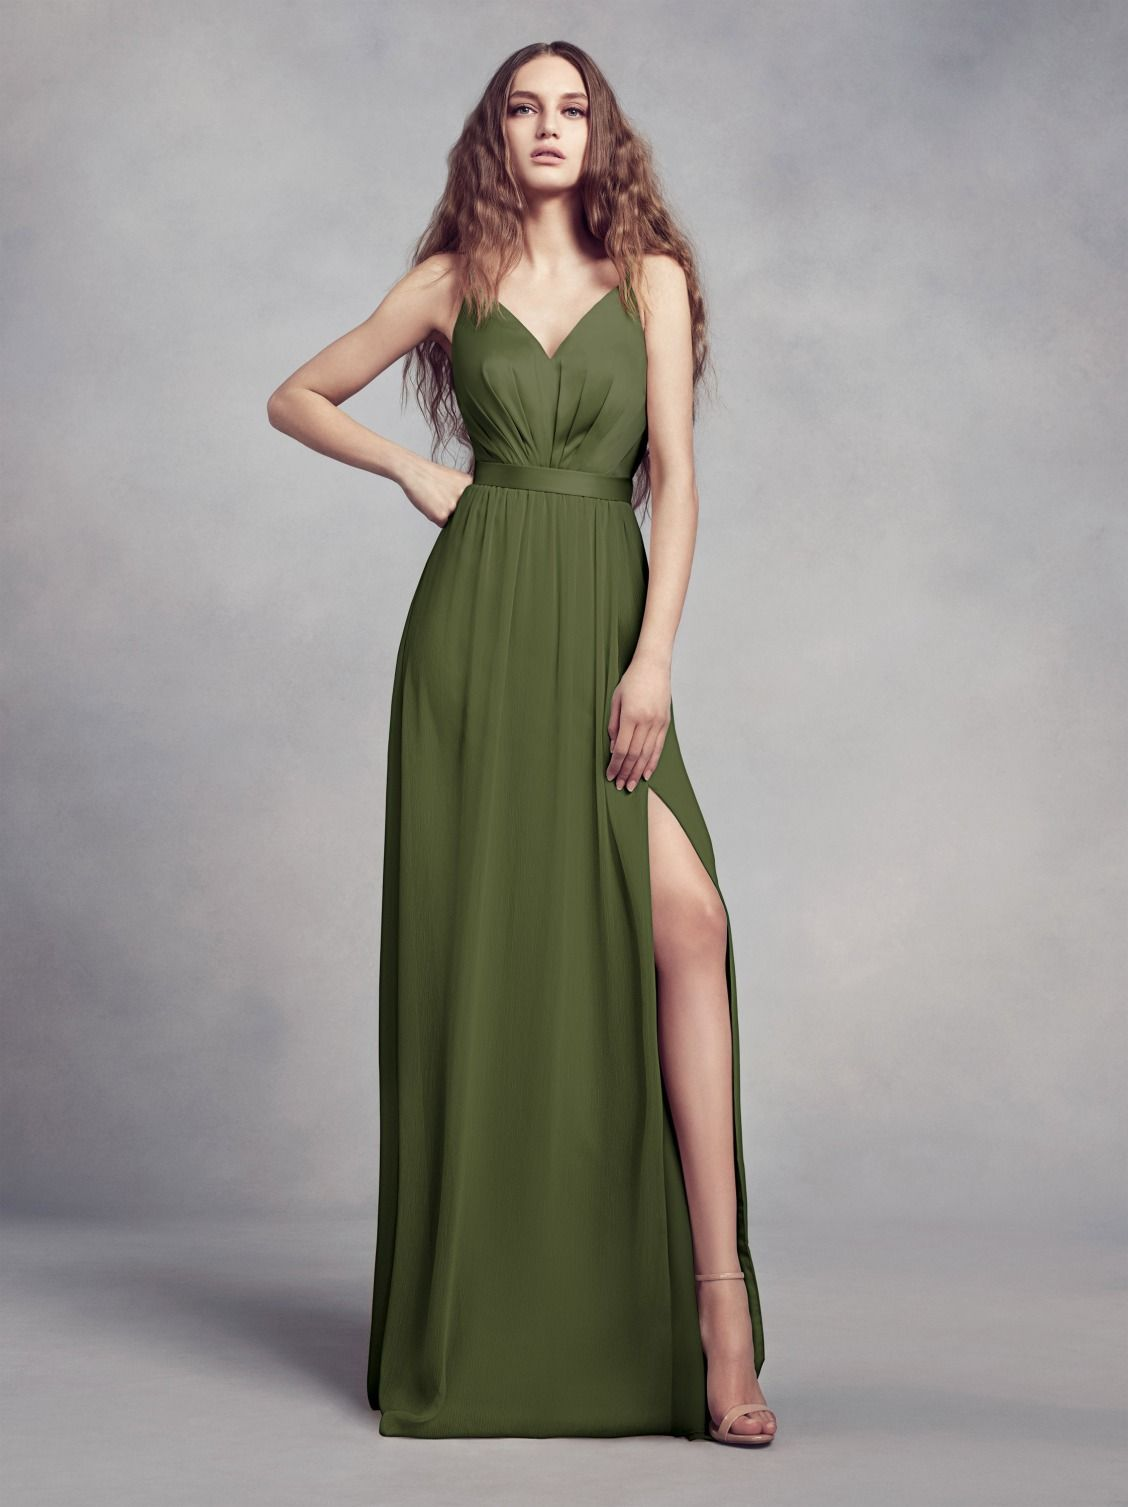 The newest color from Vera Wang, an olive bridesmaid dress ...